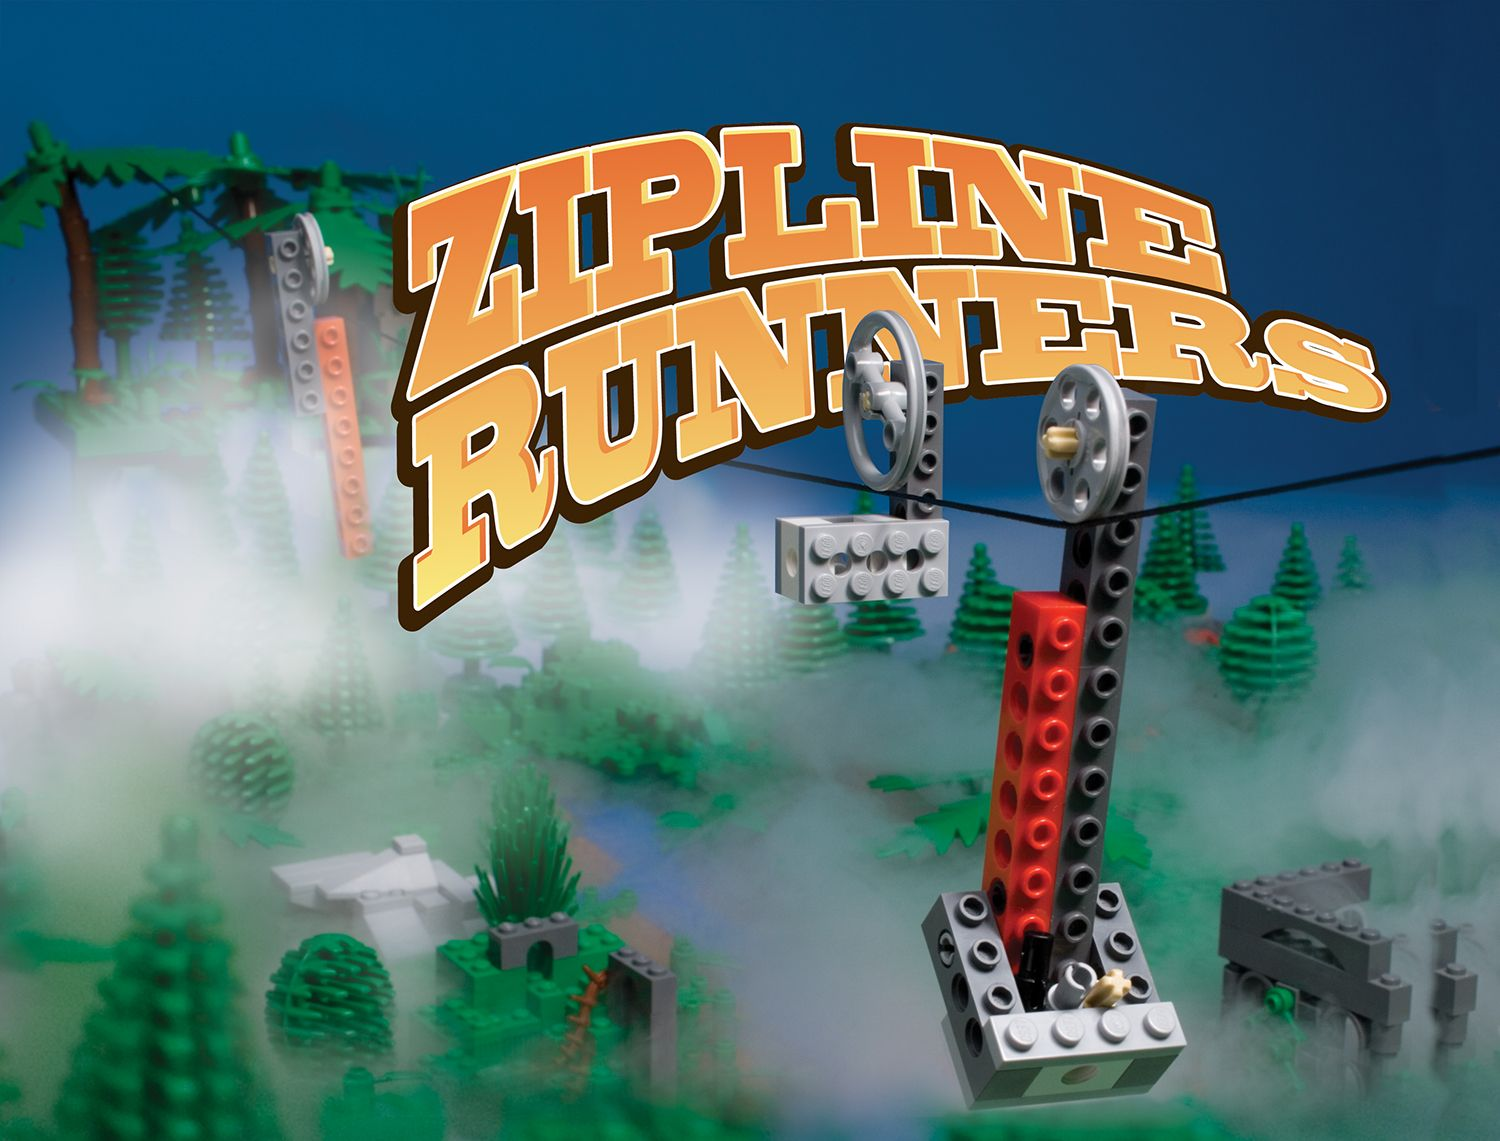 The Zipline Runners From Klutz S Lego Crazy Action Contraptions Available At Klutz Com Or A Toy Store Near You Lego Kits Toy Store Legos